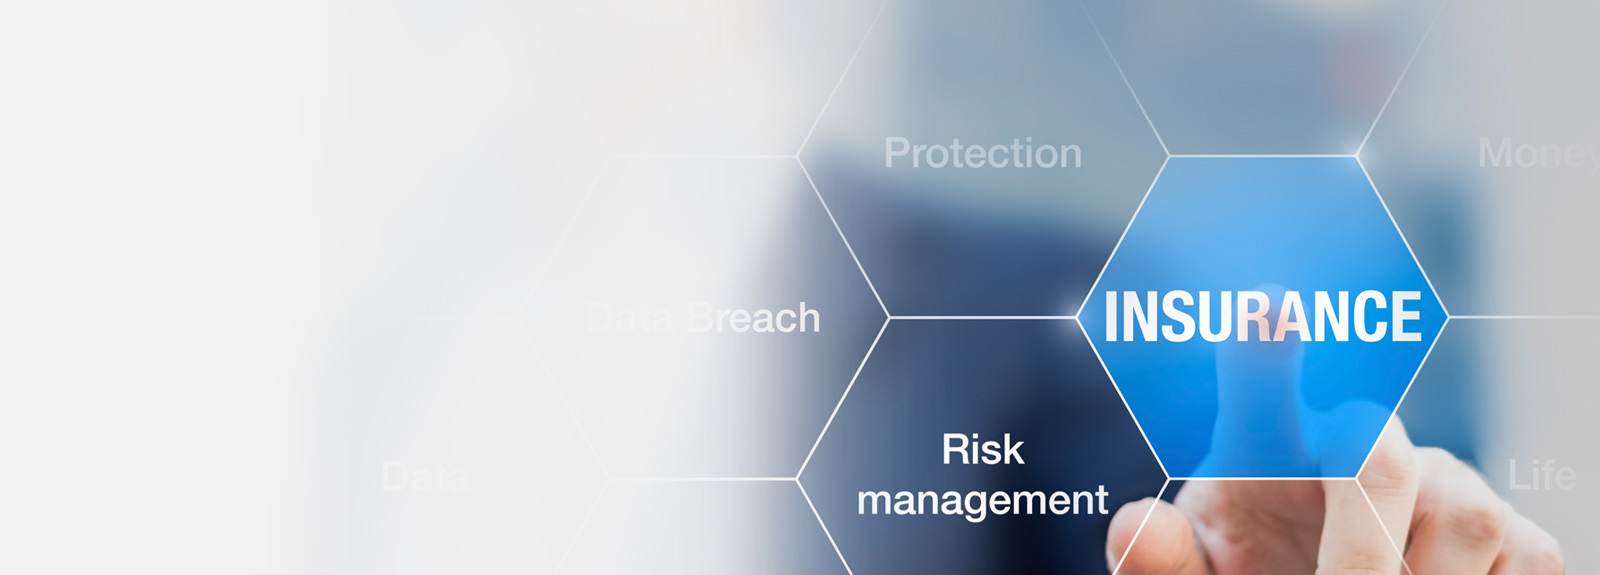 We help insurers predetermine the cyber risks